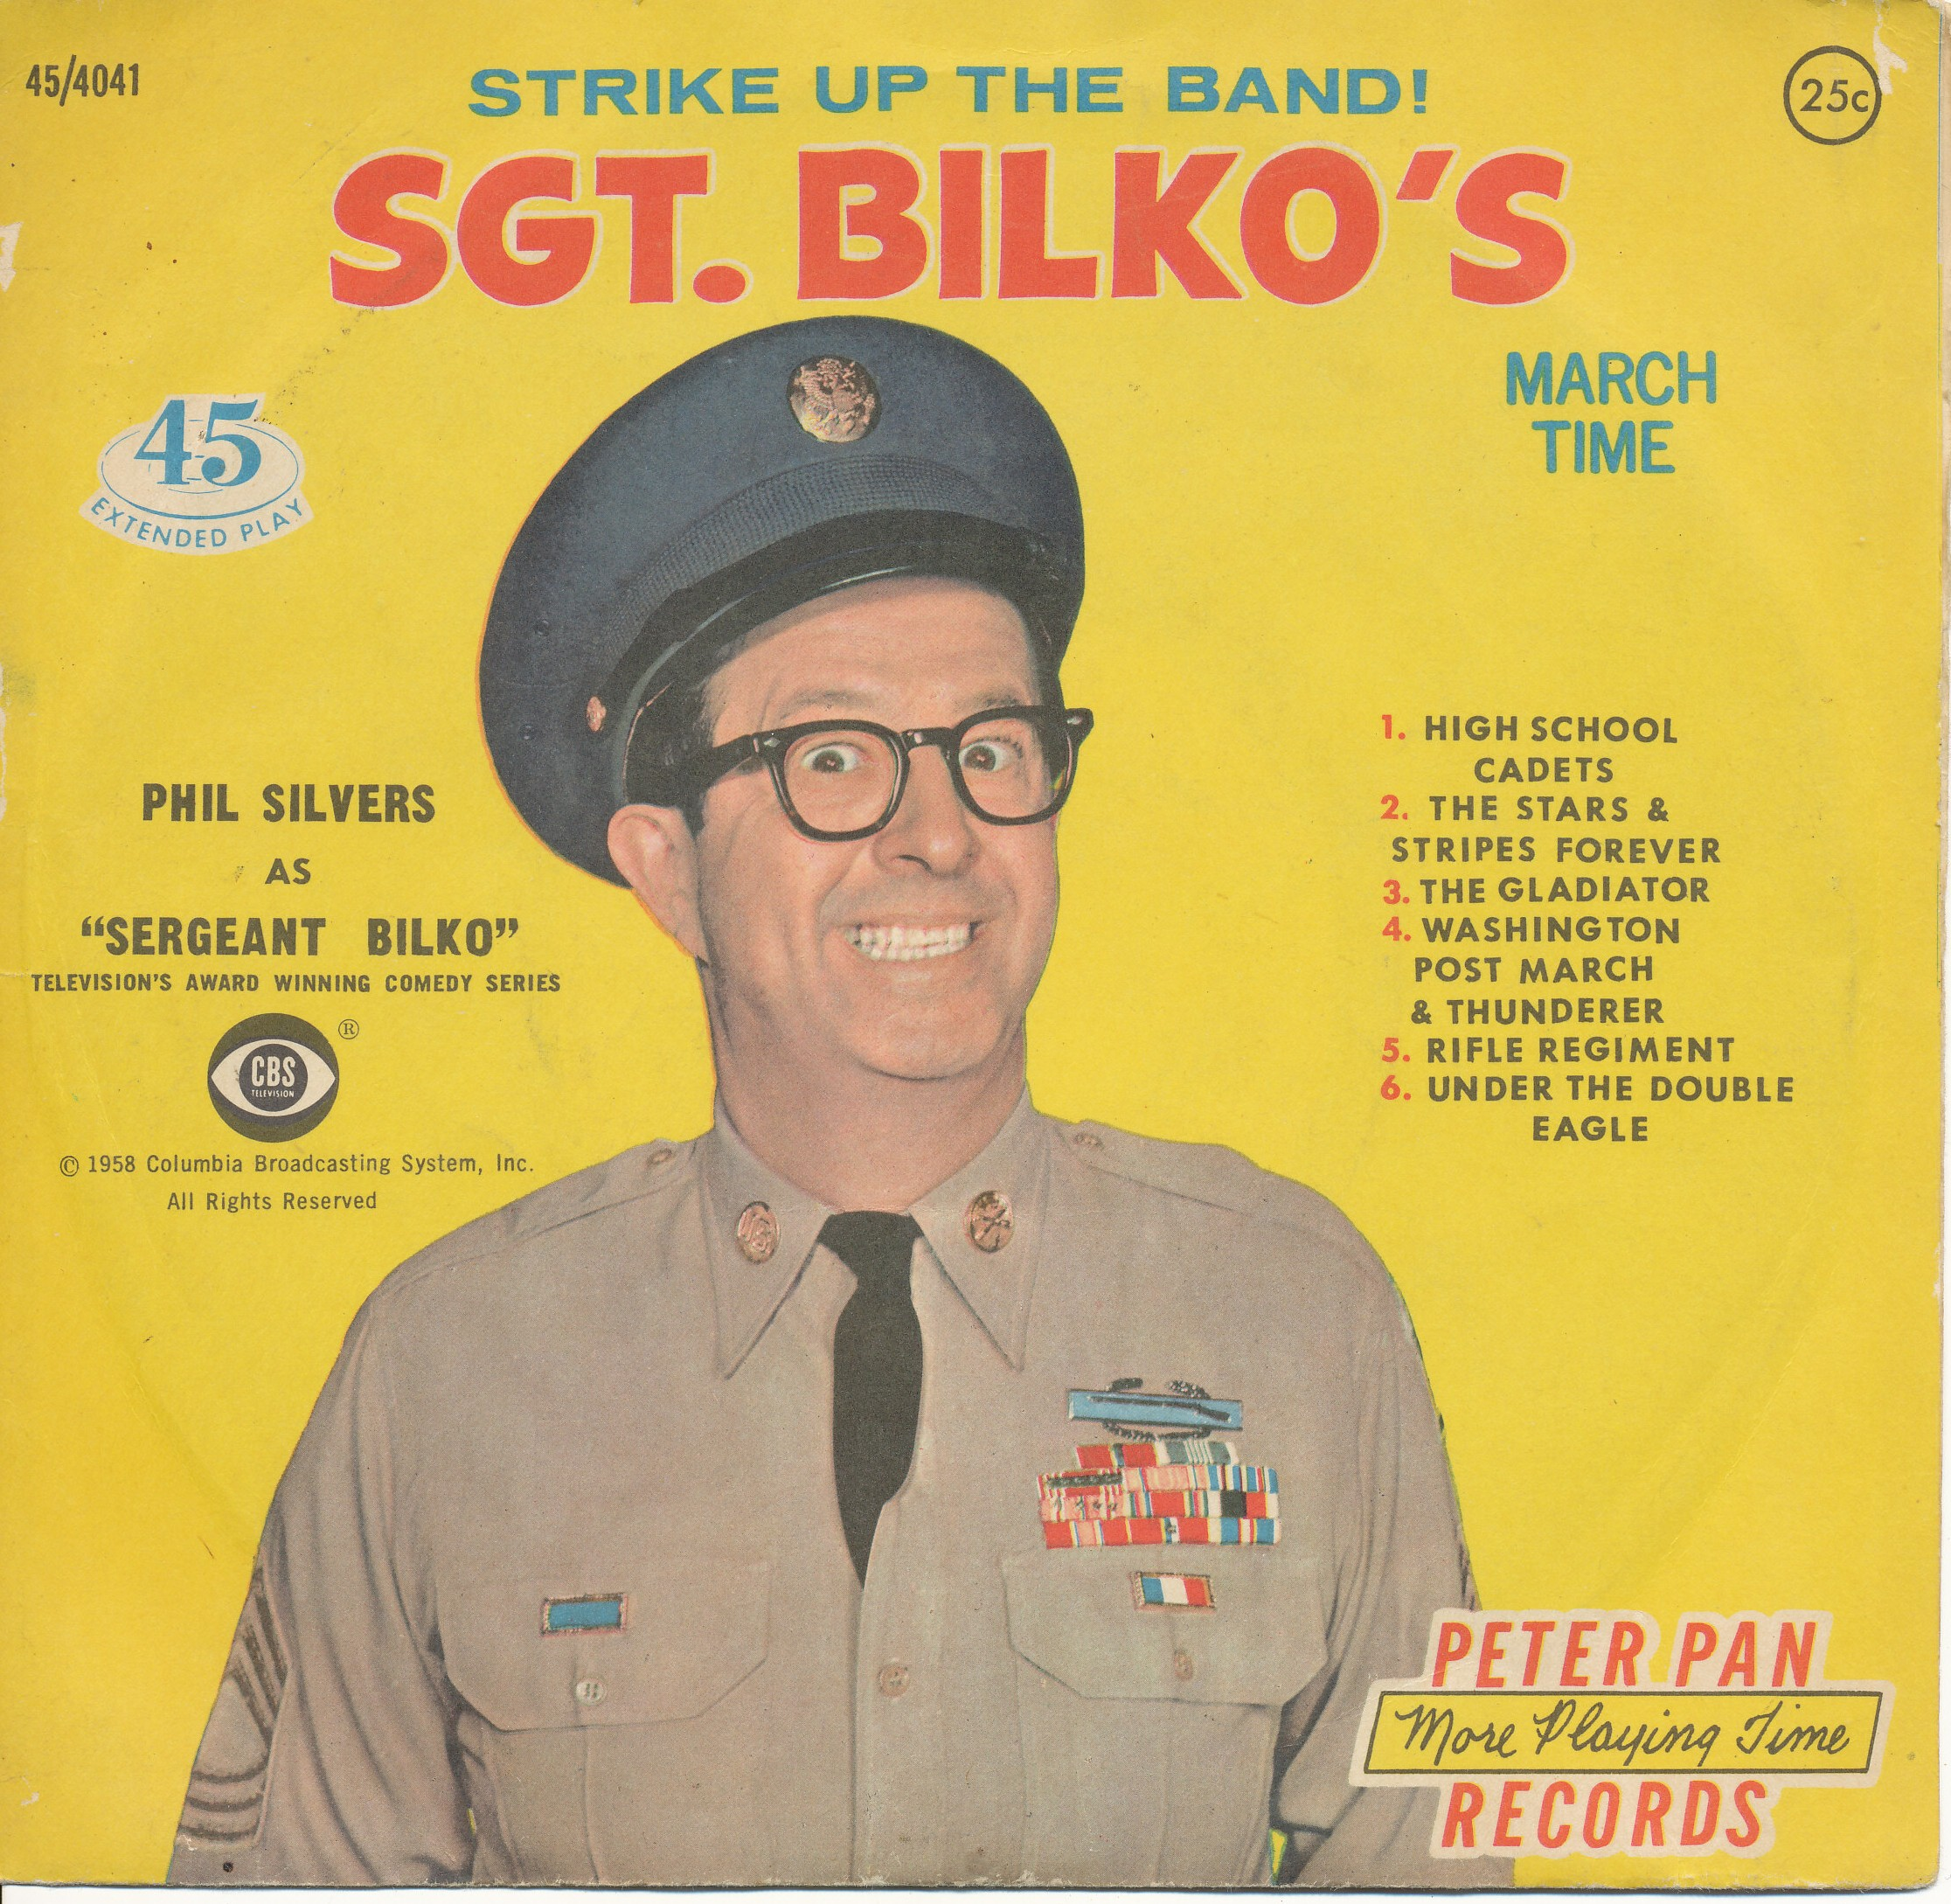 1958 Sgt. Bilko's March Time, Peter Pan Records, Phil Silvers